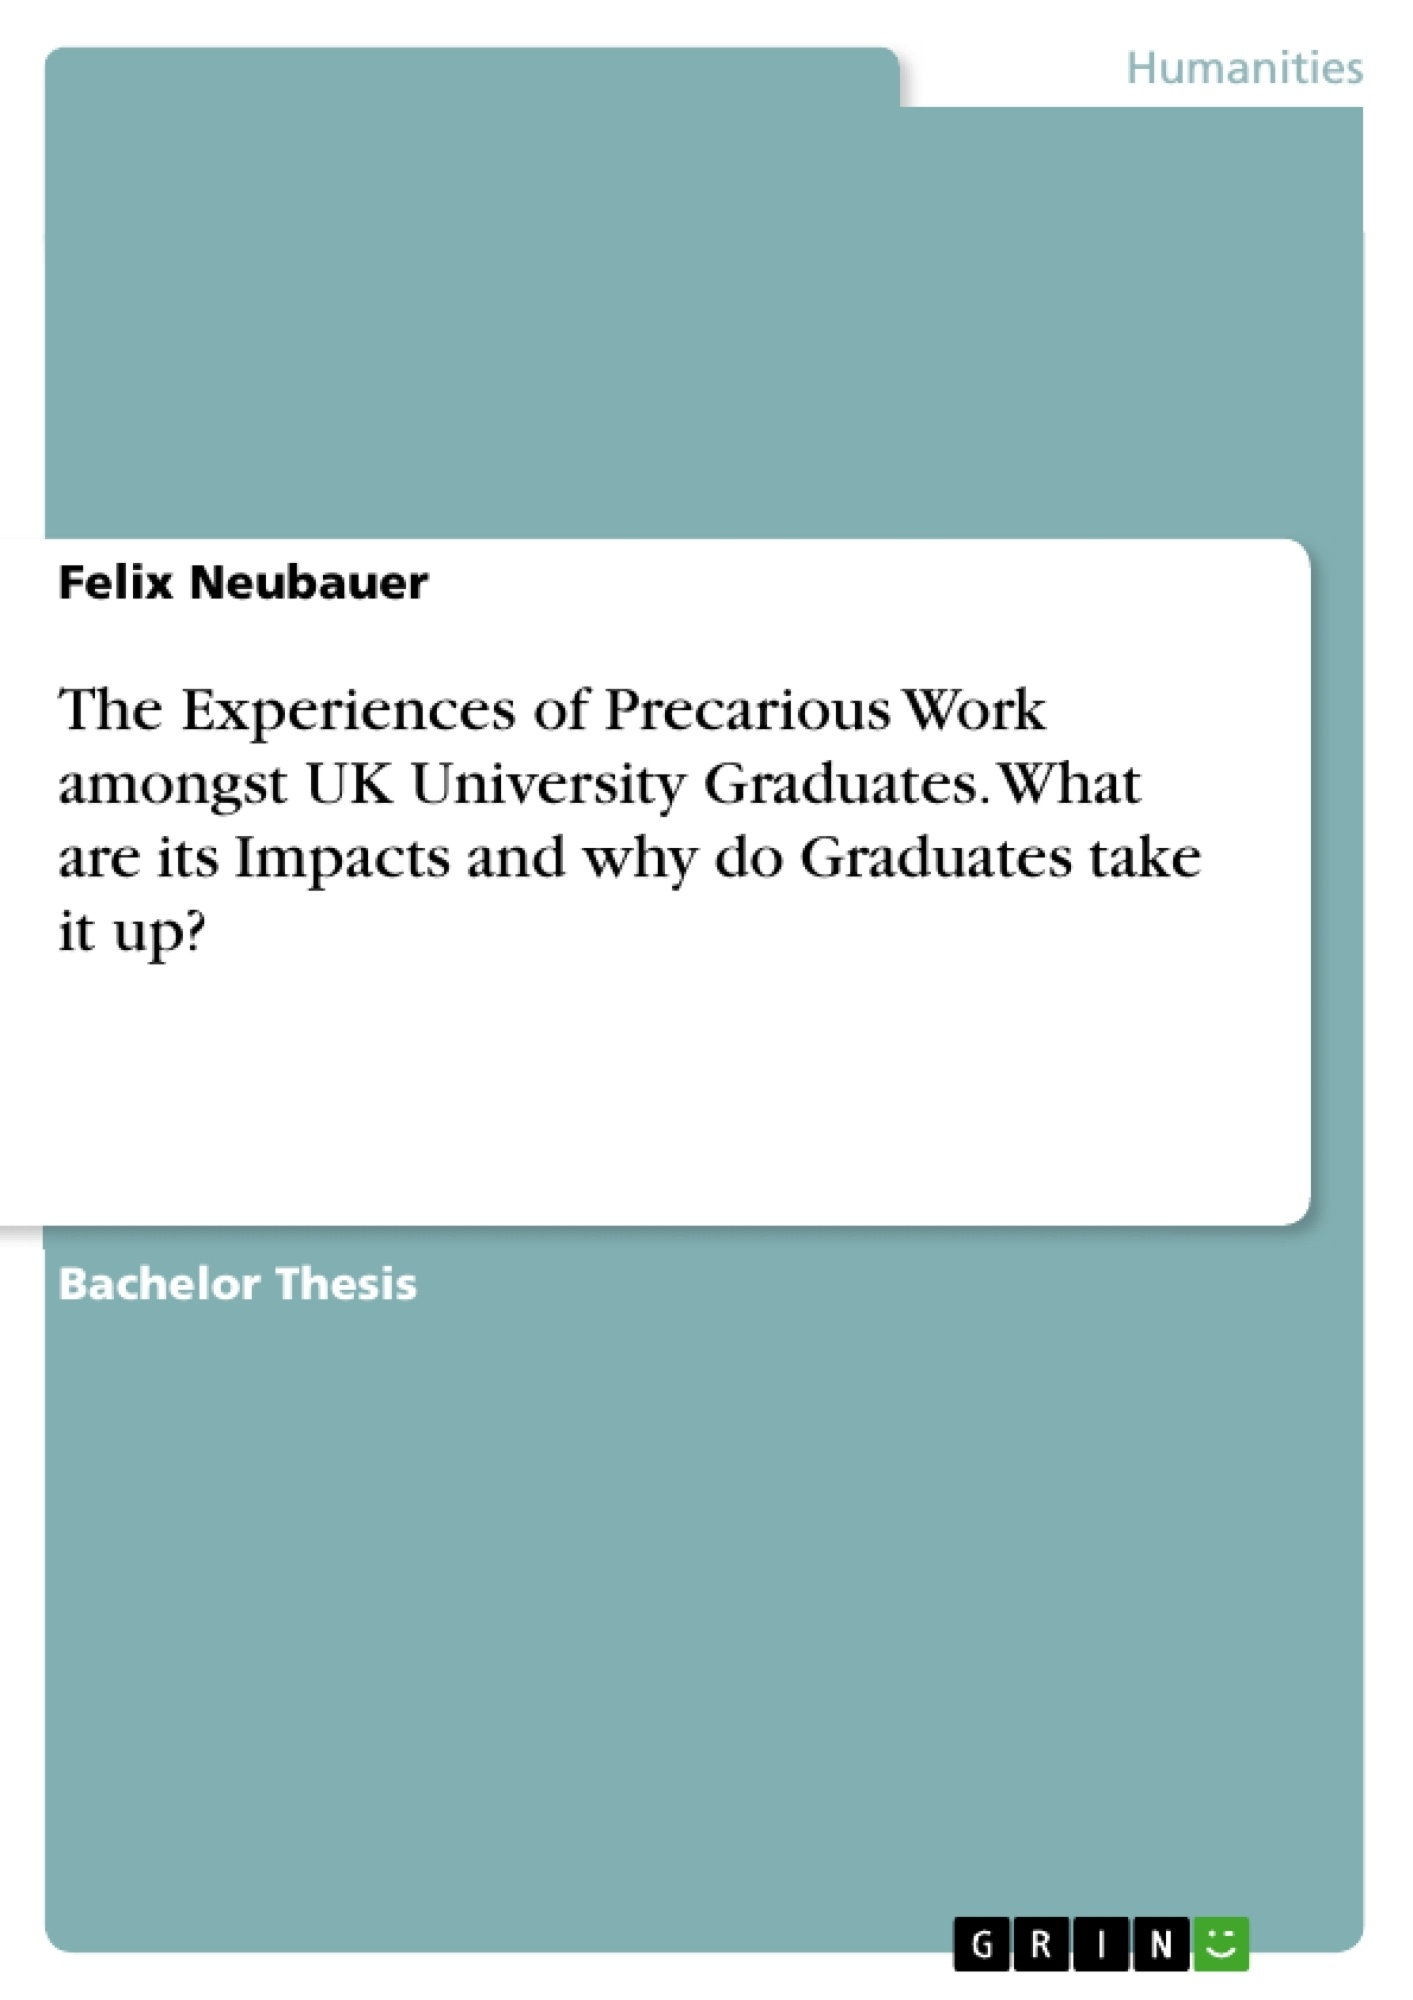 Title: The Experiences of Precarious Work amongst UK University Graduates. What are its Impacts and why do Graduates take it up?